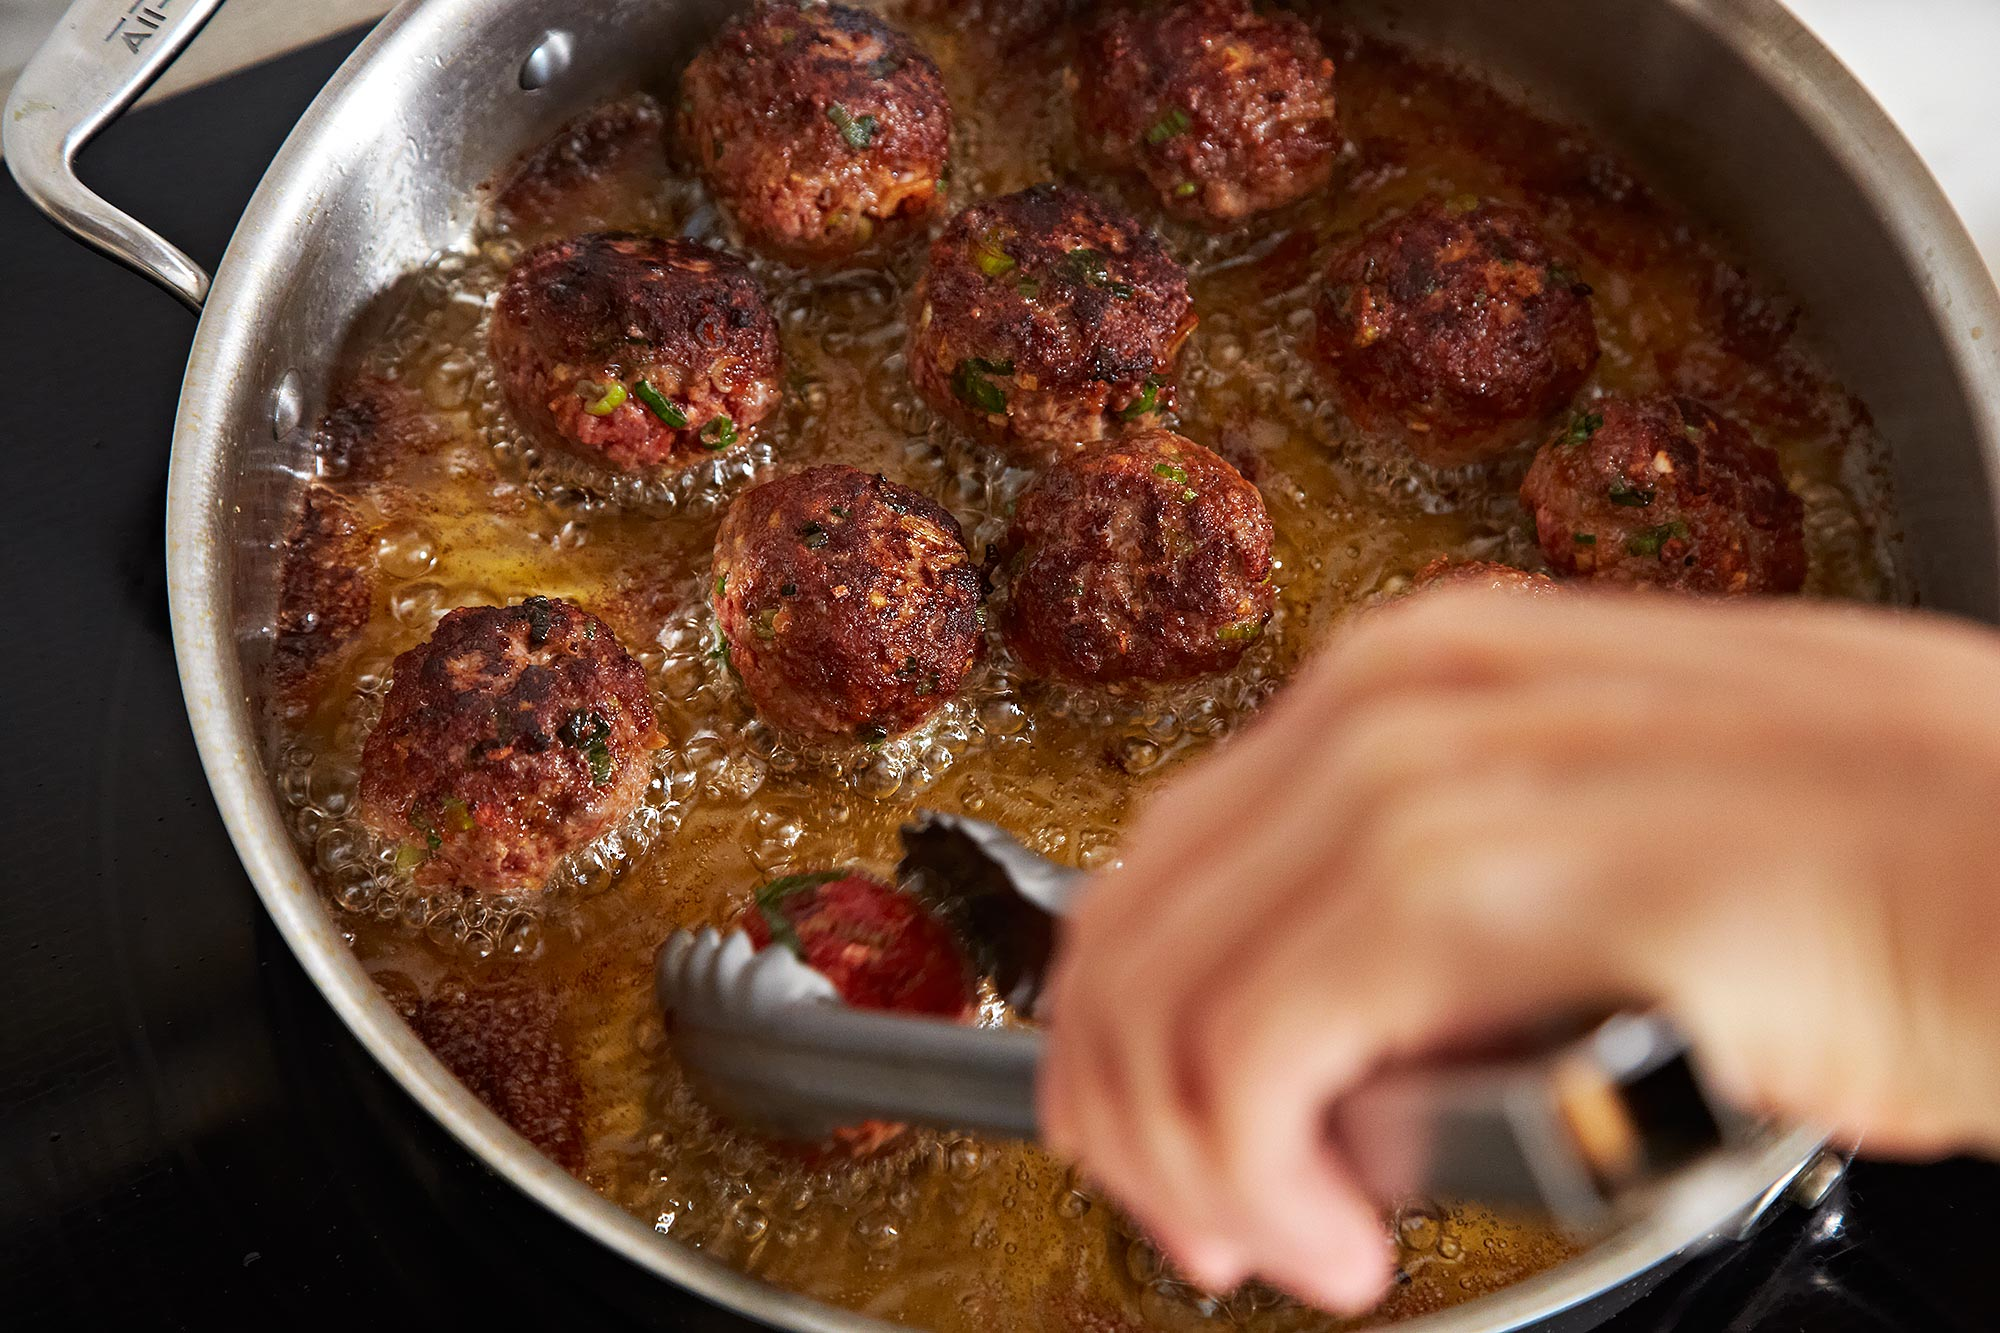 2013-0924_finalist_spicy-meatballs-431